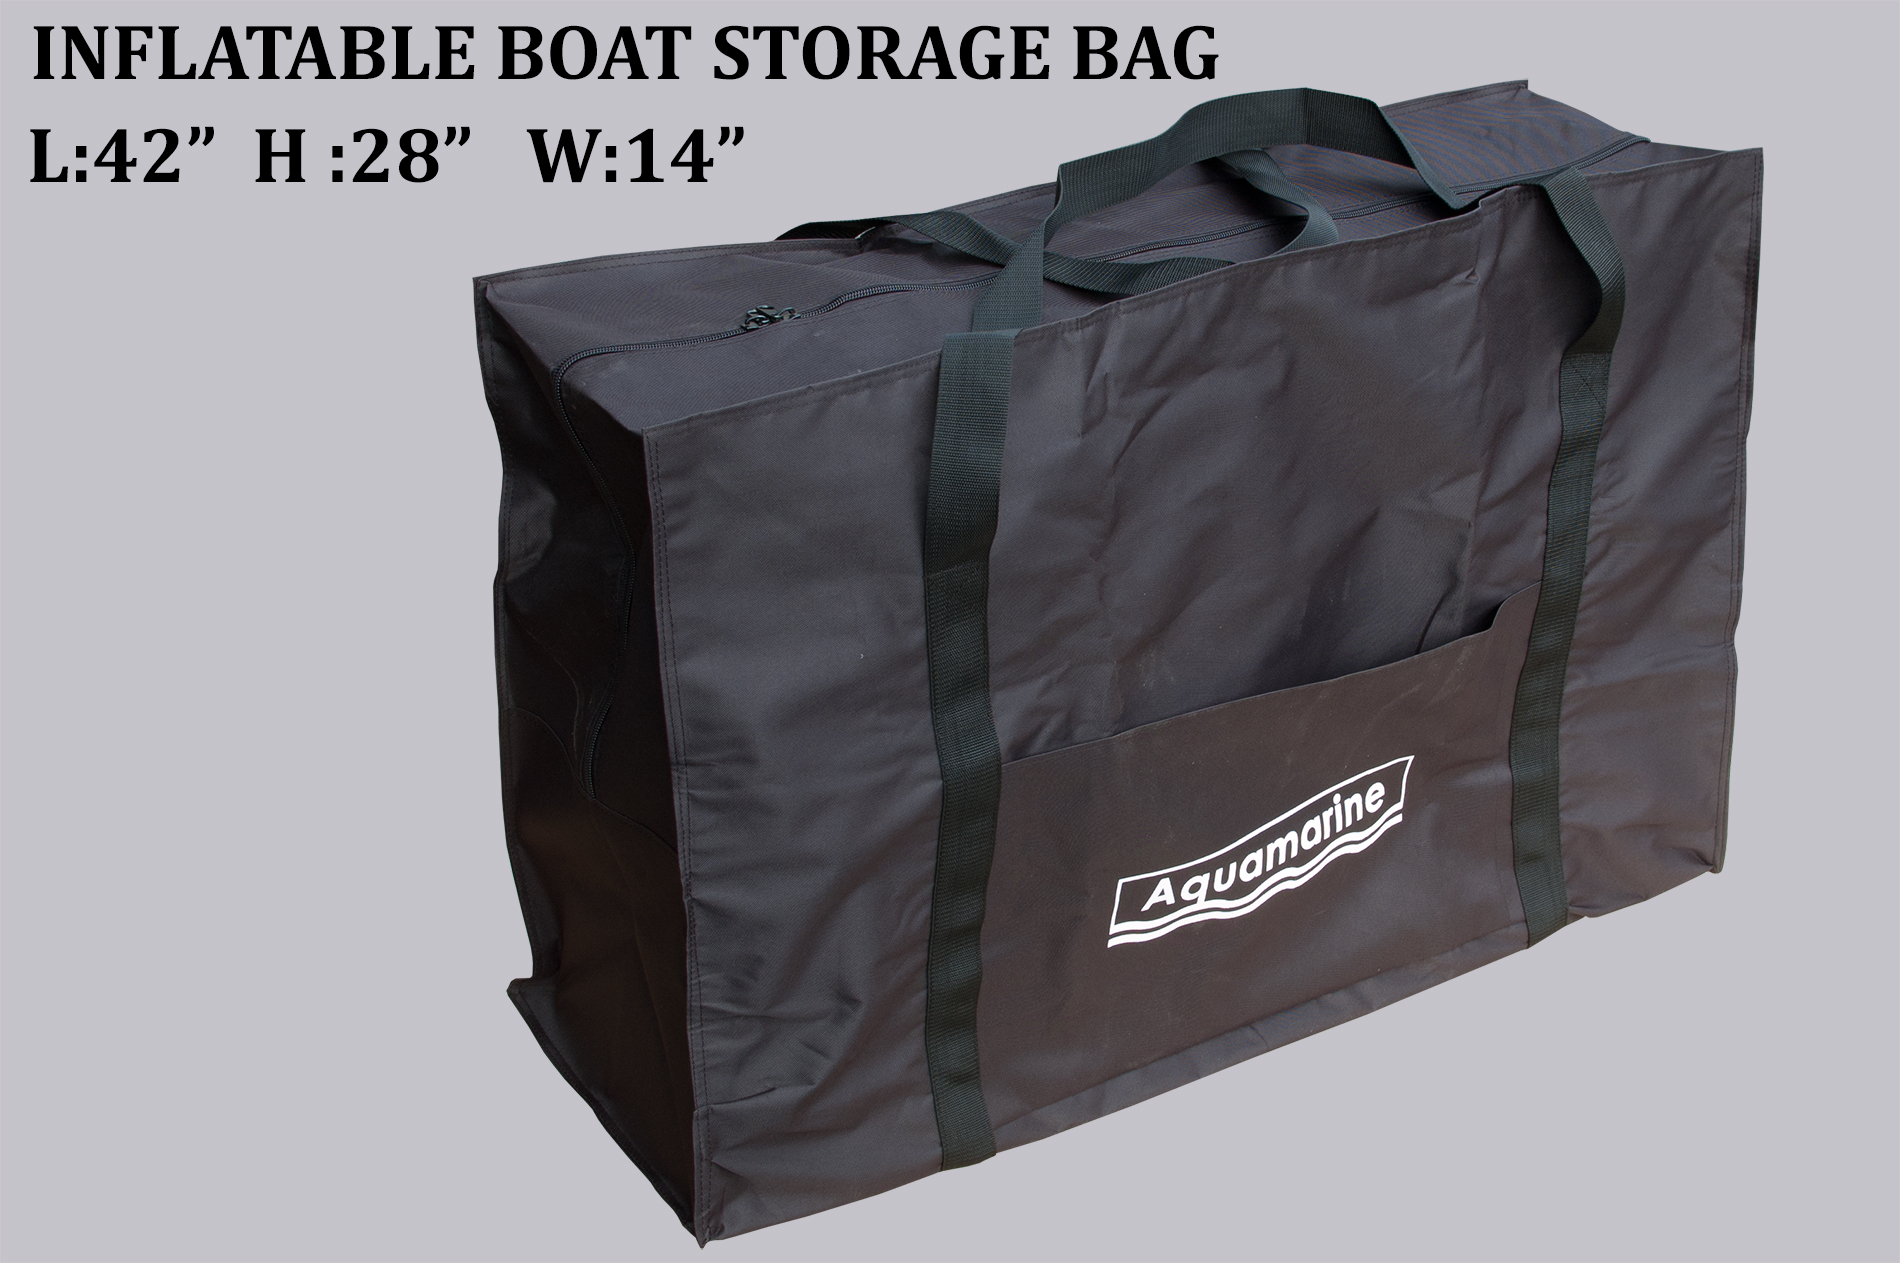 Storage bag for inflatable boat ... & Storage Bag for inflatable boat dinghy